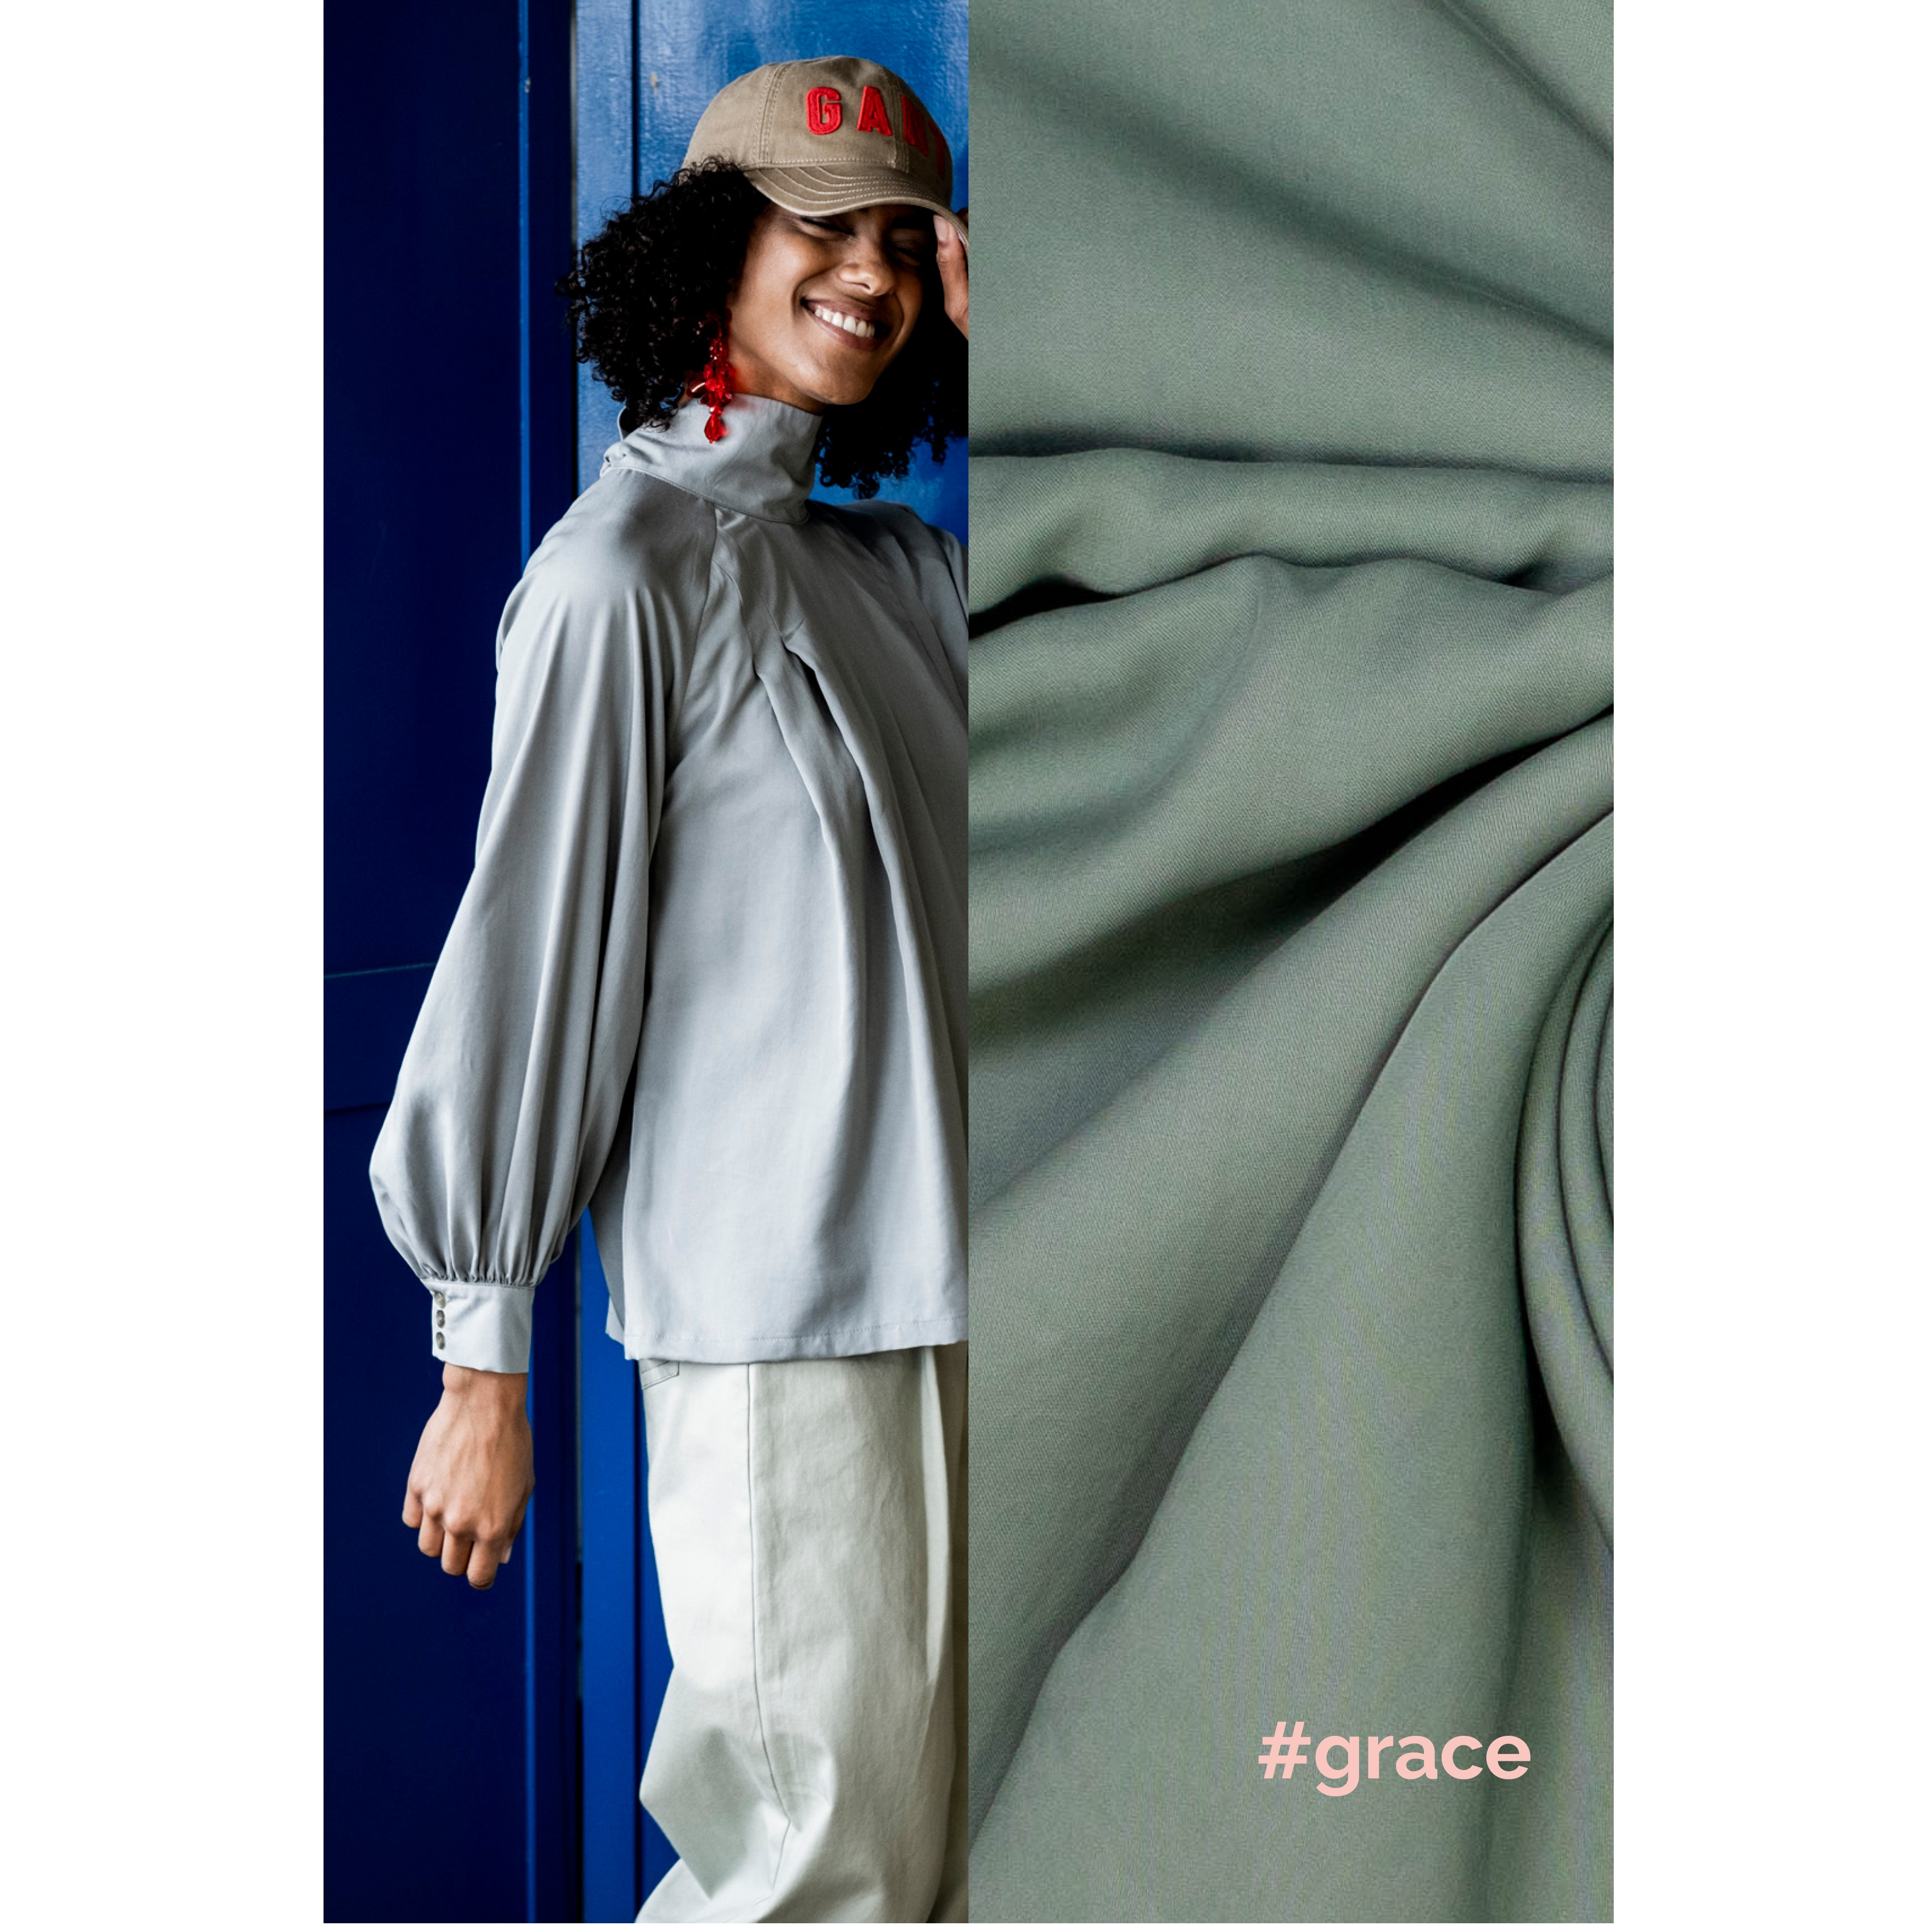 Fibre Mood #Grace, Tencel, grün. Art. FM799300